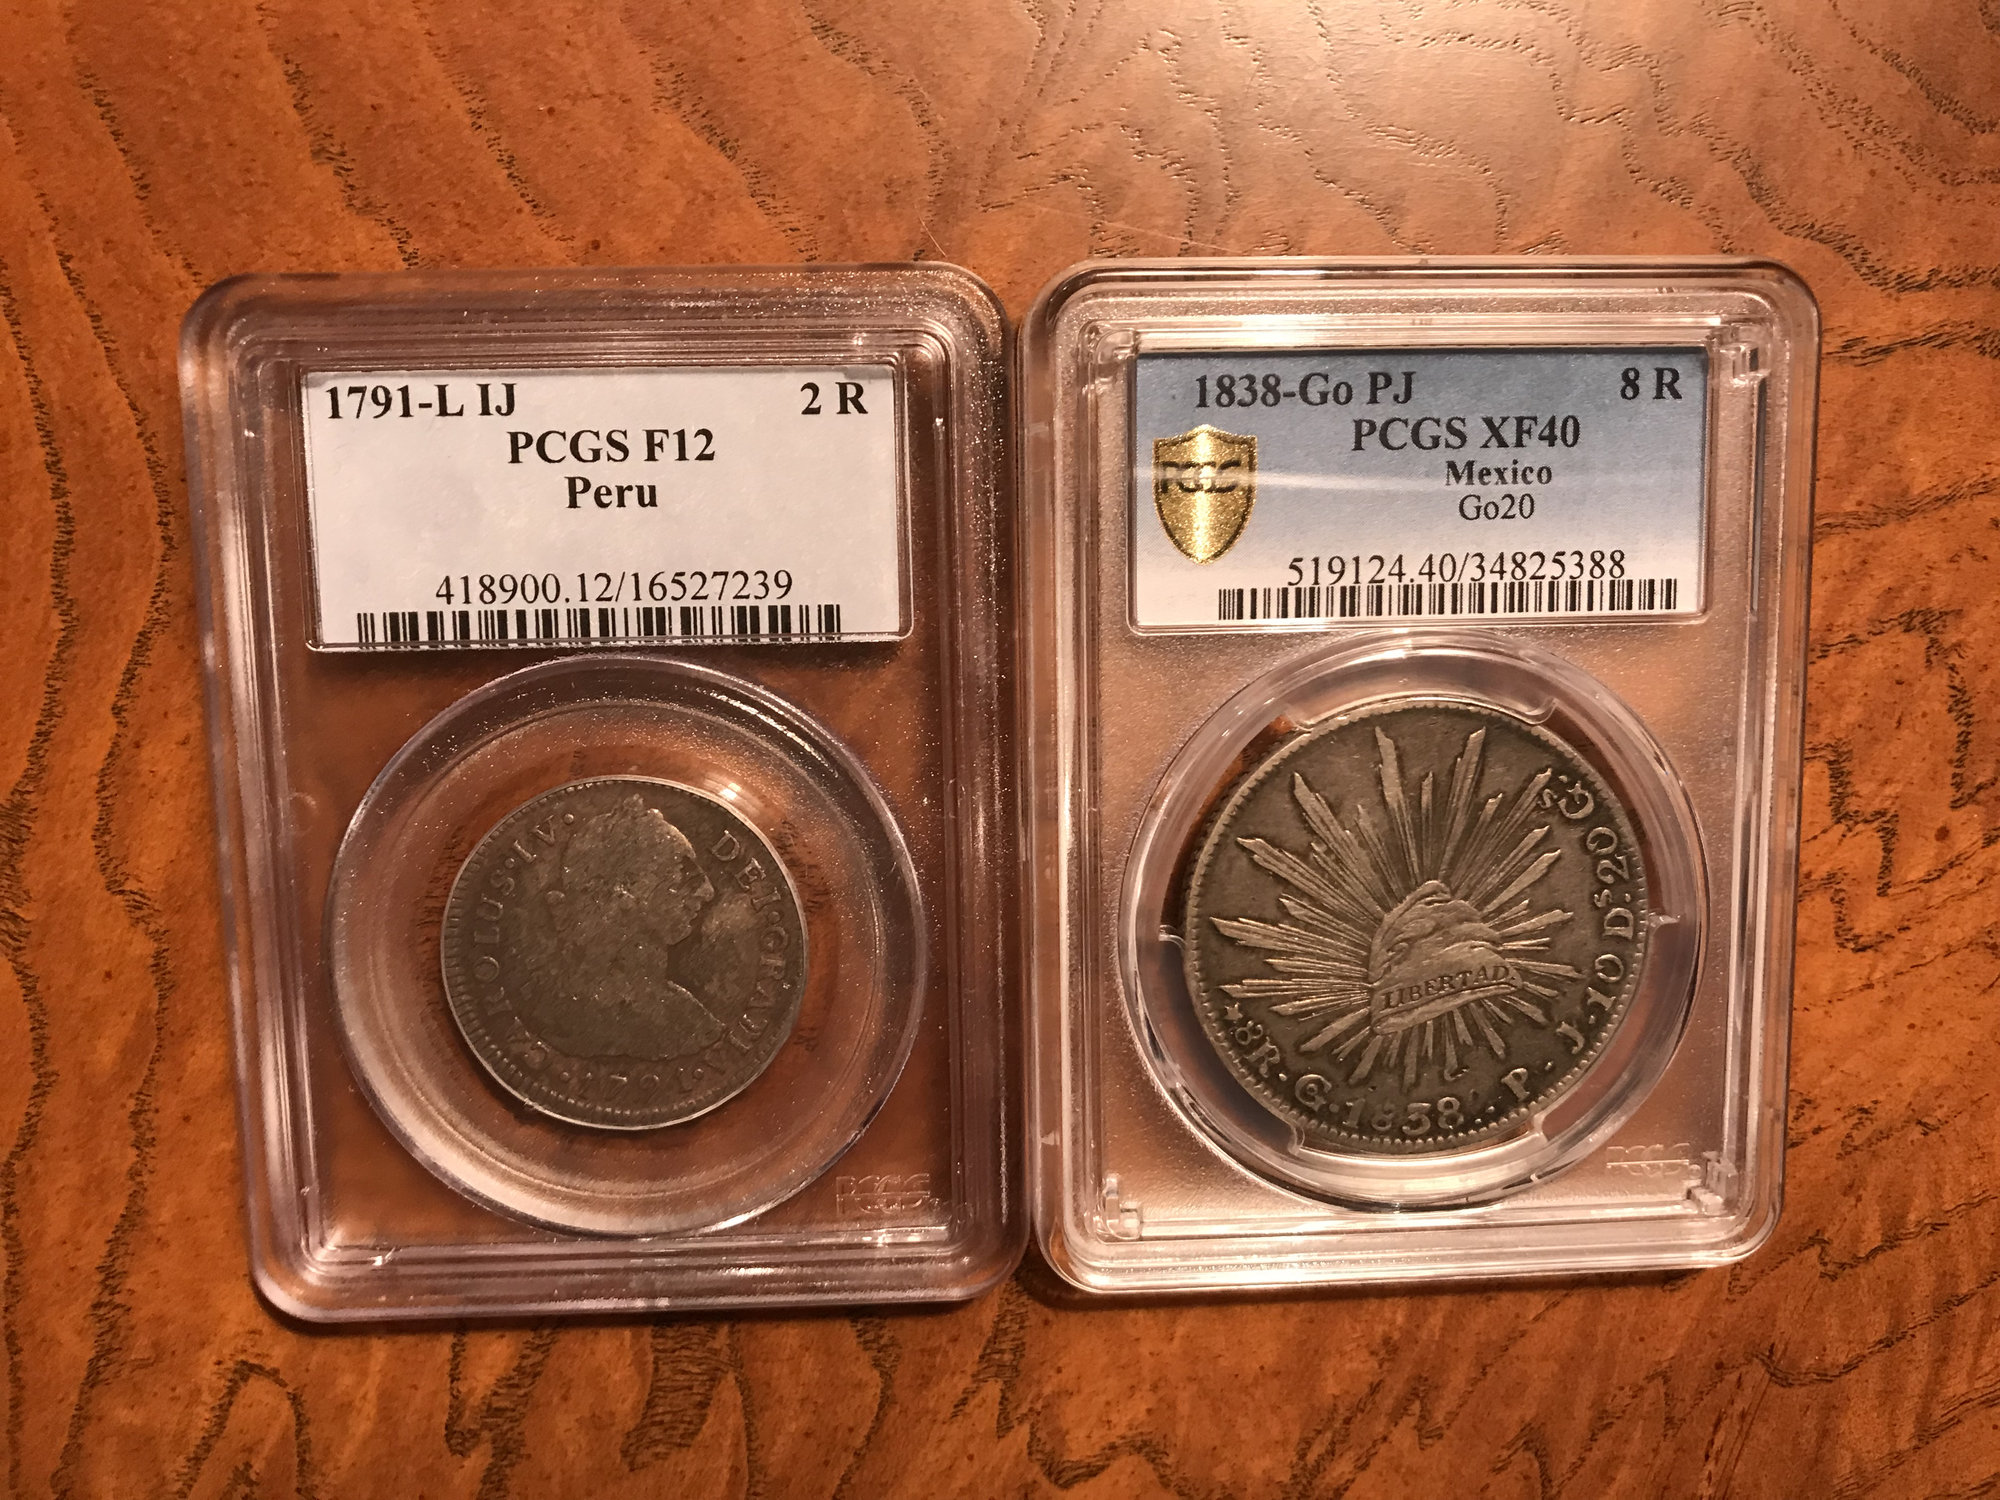 FS - Cool Latin America and Canadian - Prices dropped